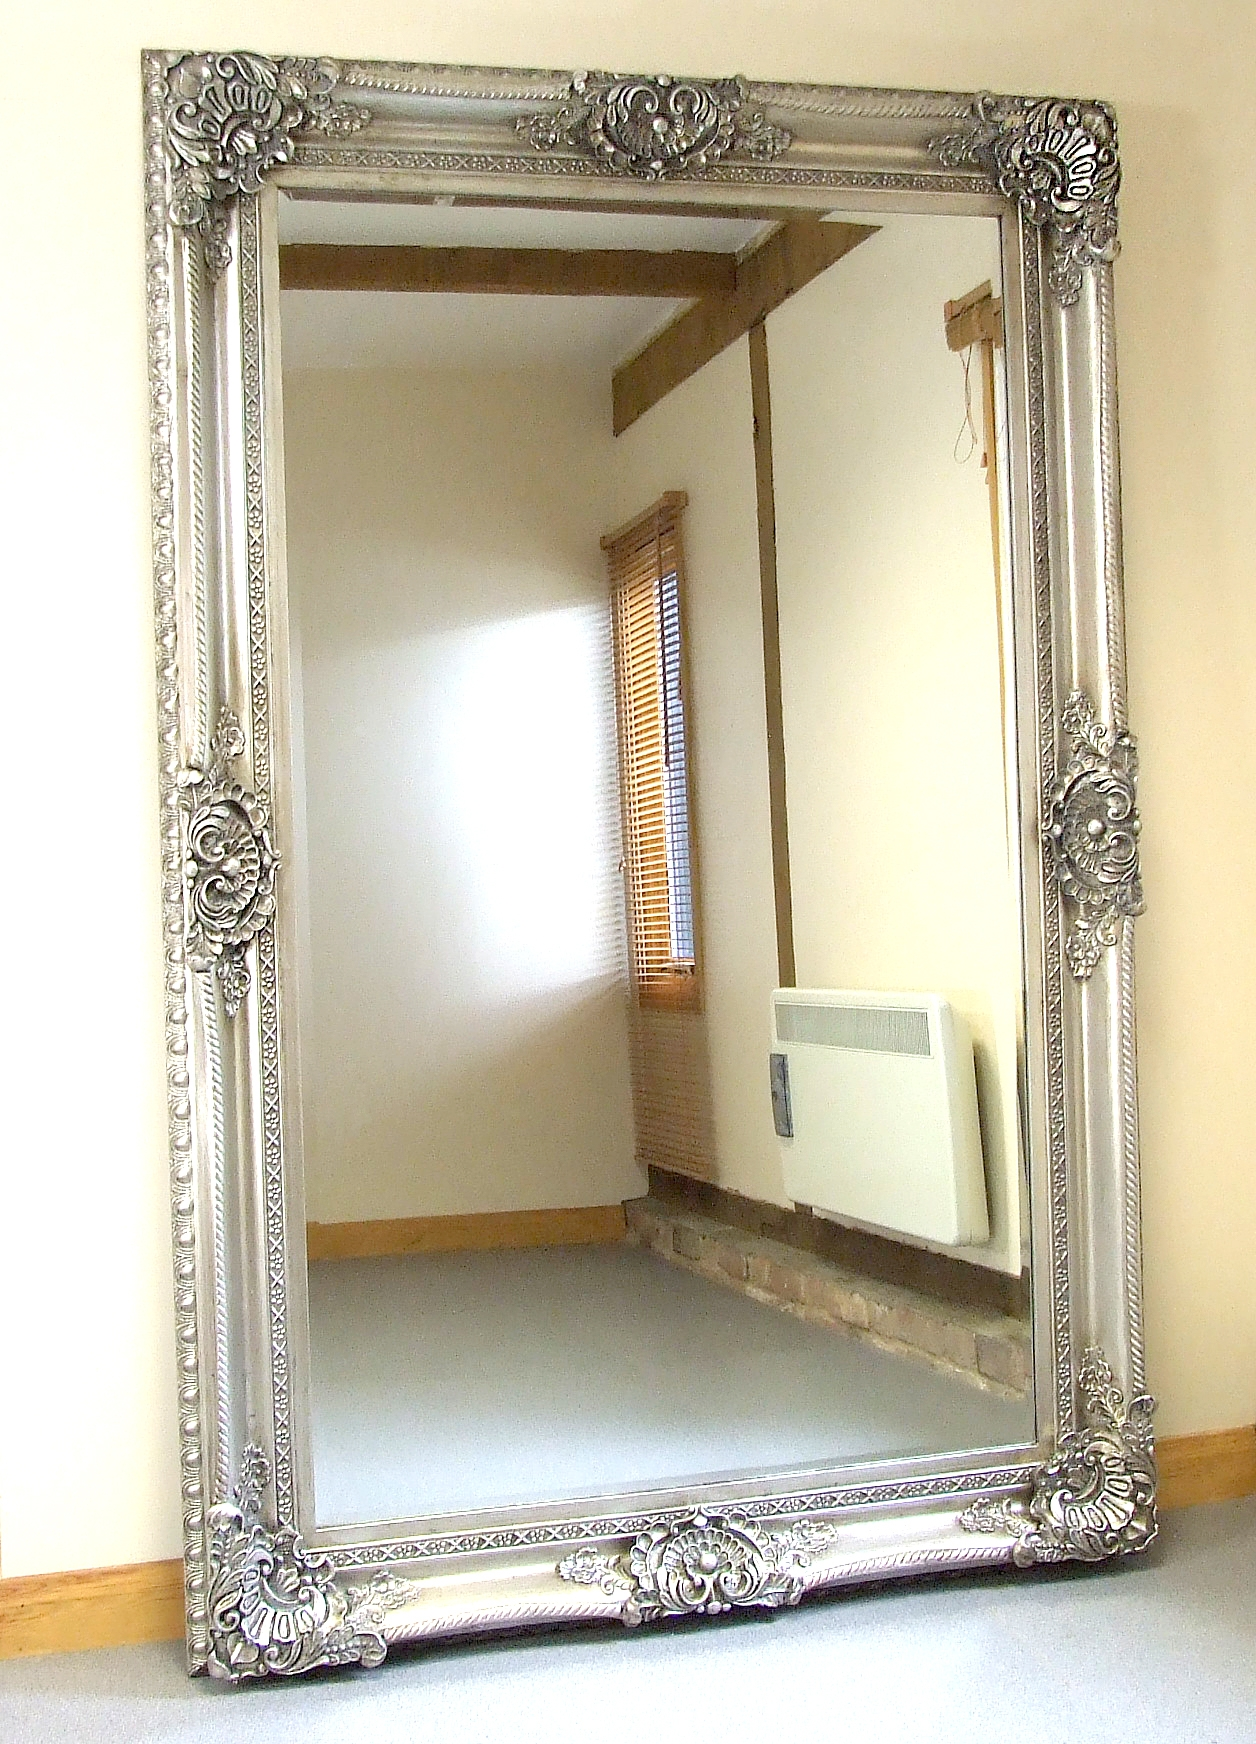 Flooring Impressive Ornate Floor Mirror Photo Designngth Intended For Oversized Mirrors For Sale (View 11 of 15)